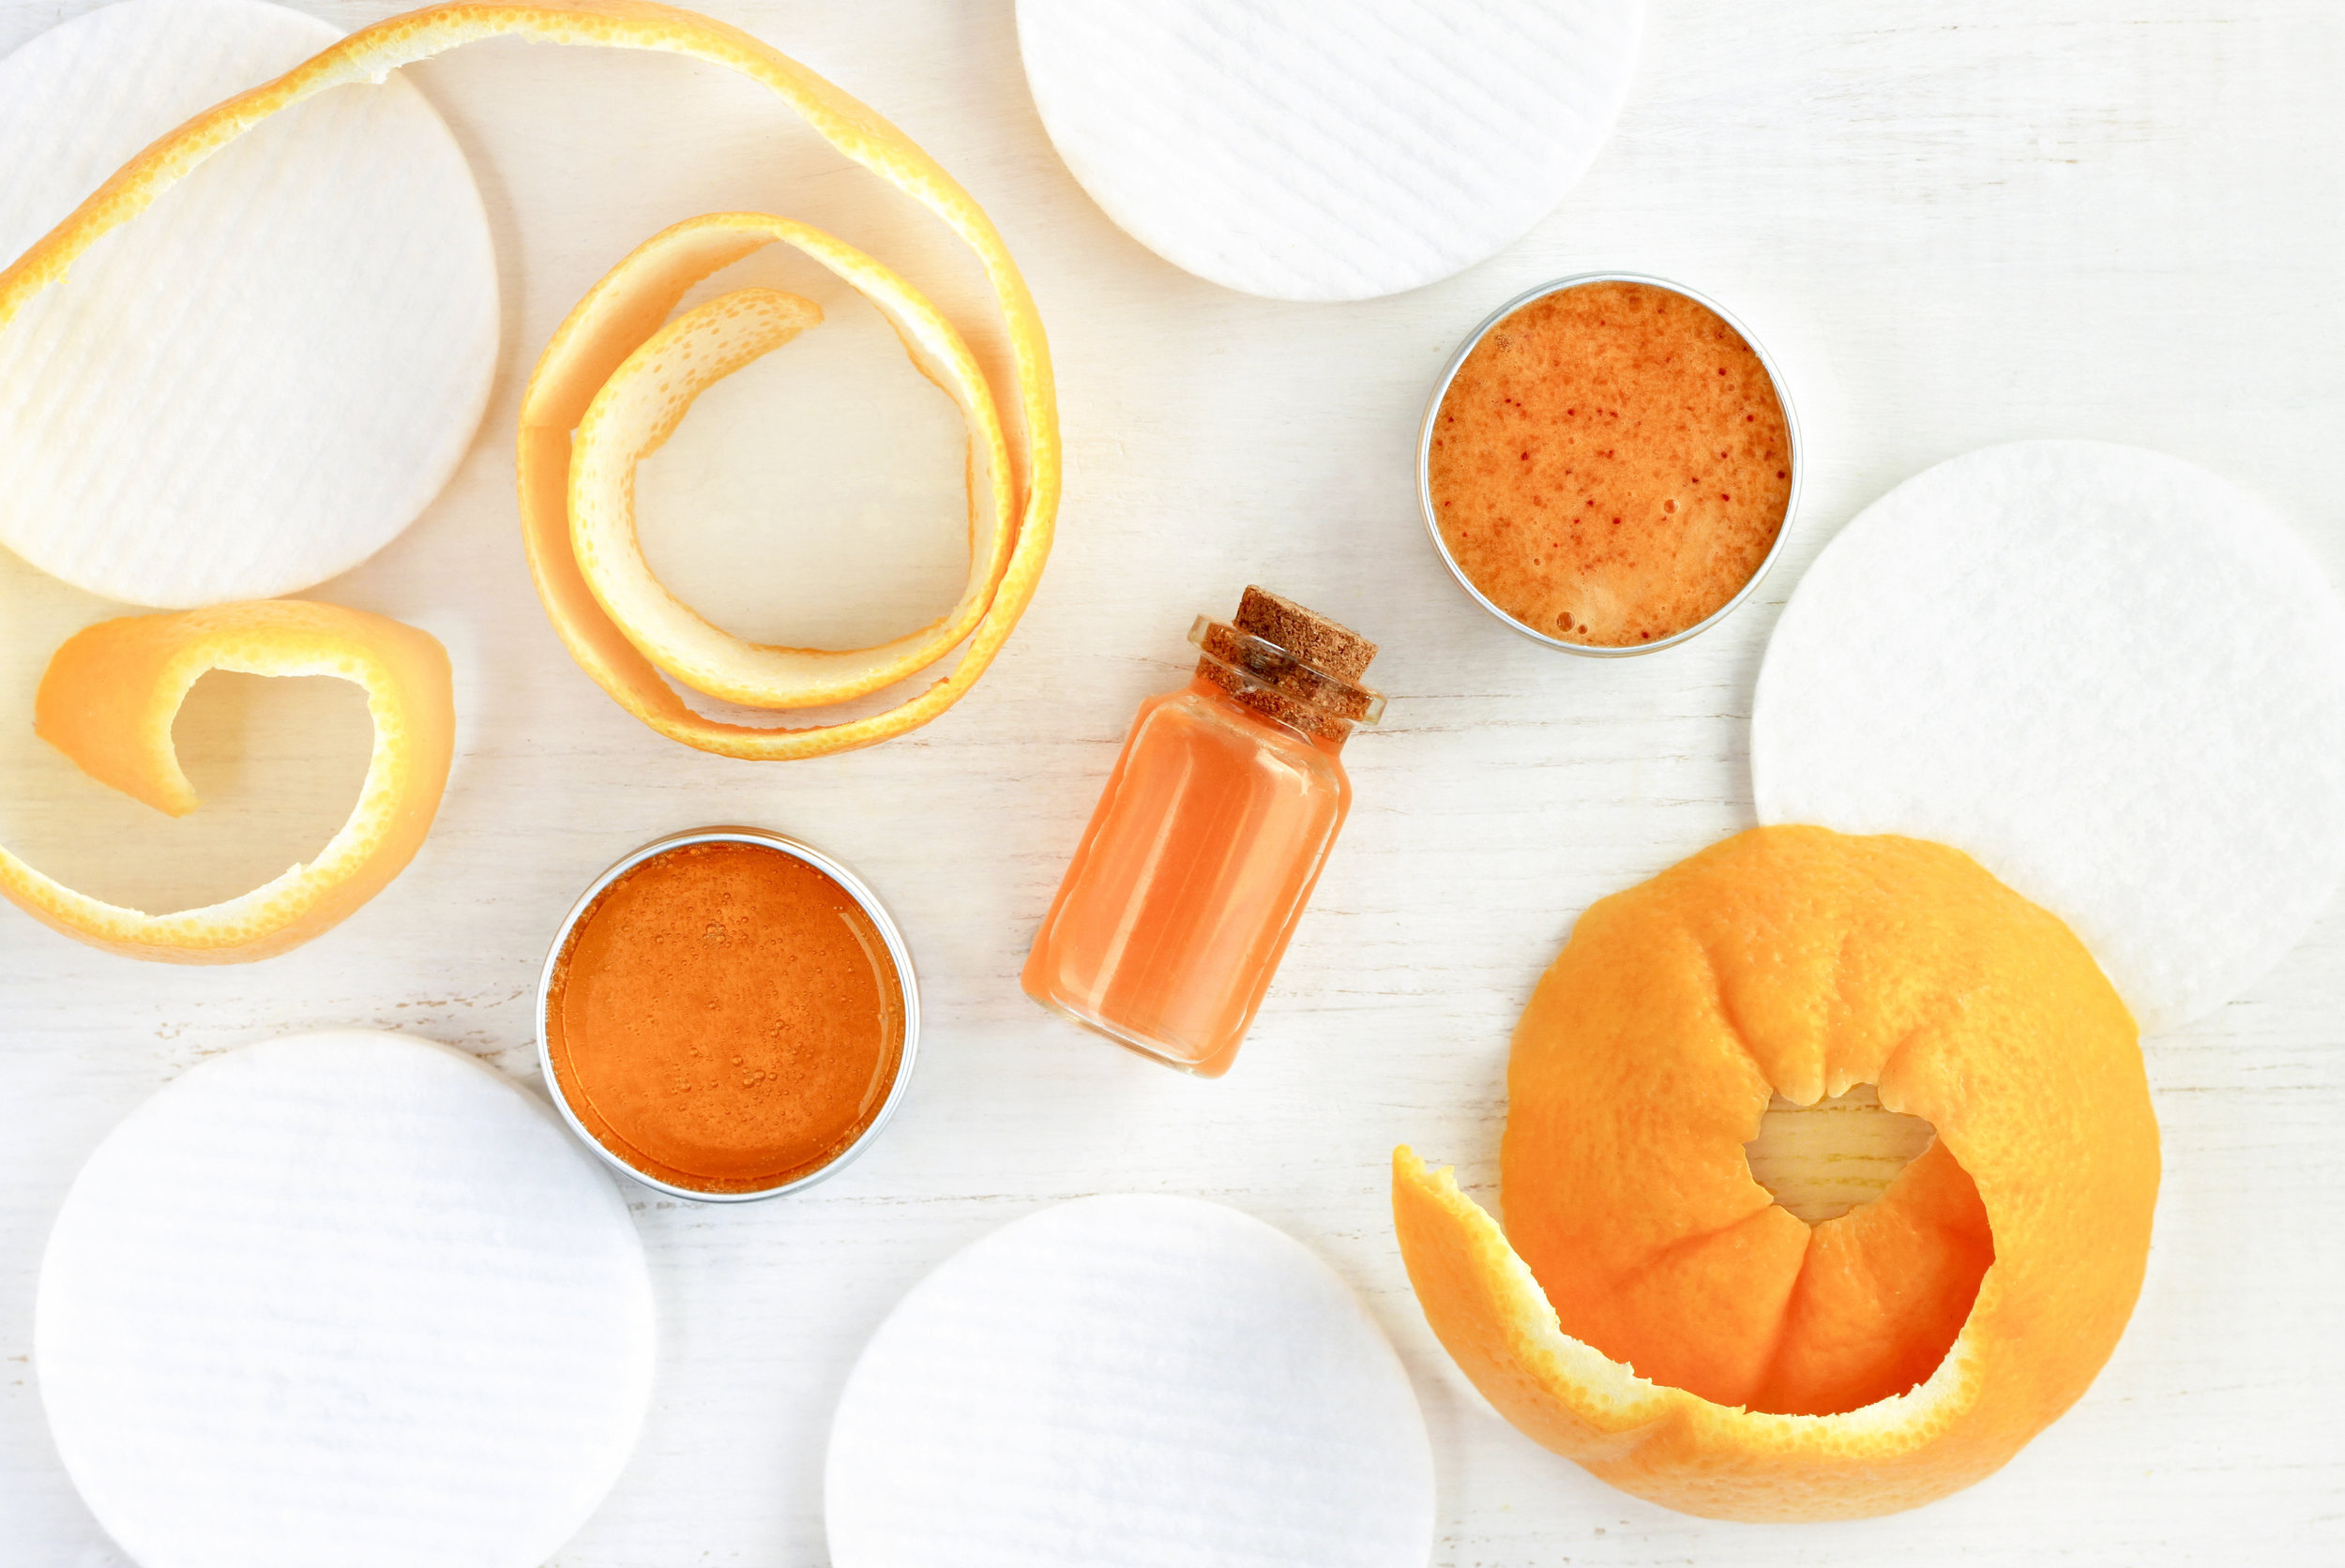 Orange Peel Extract - The skin of an orange is packed with vitamin C, calcium, B vitamins which are key to anti-aging properties, and zinc which helps protect your skin from UV rays.